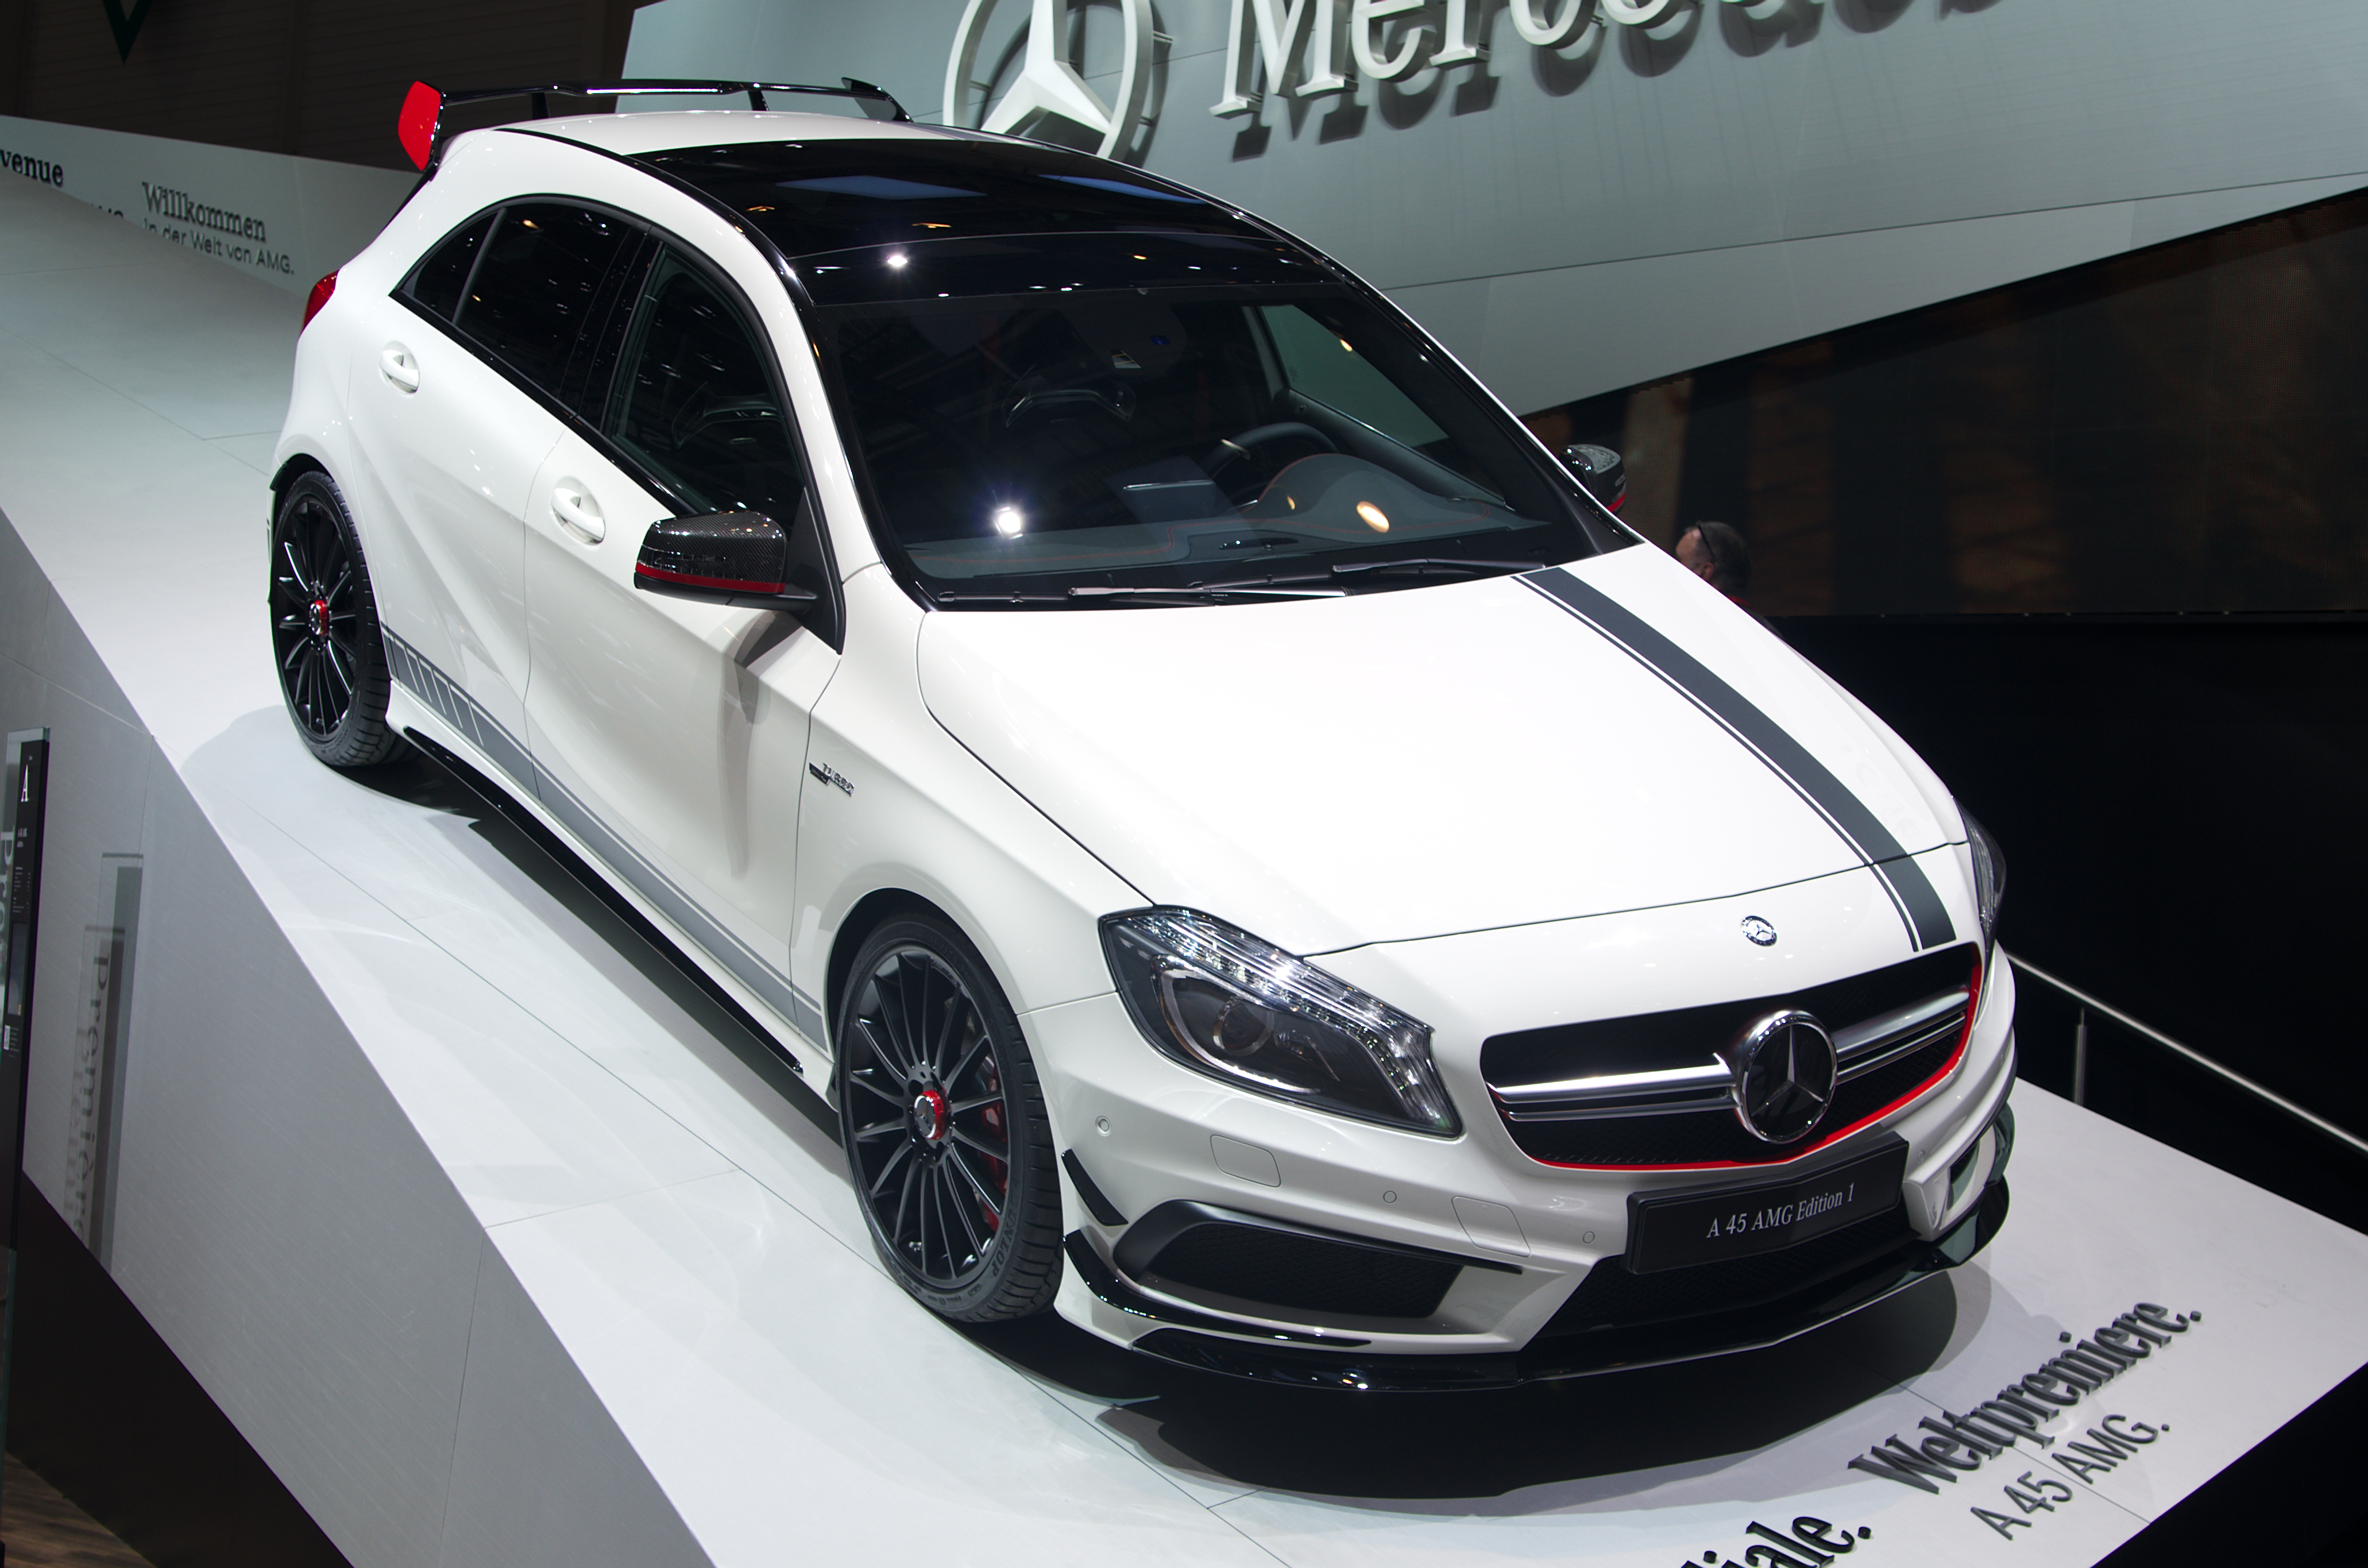 file geneva motorshow 2013 mercedes a 45 amg edition wikimedia commons. Black Bedroom Furniture Sets. Home Design Ideas